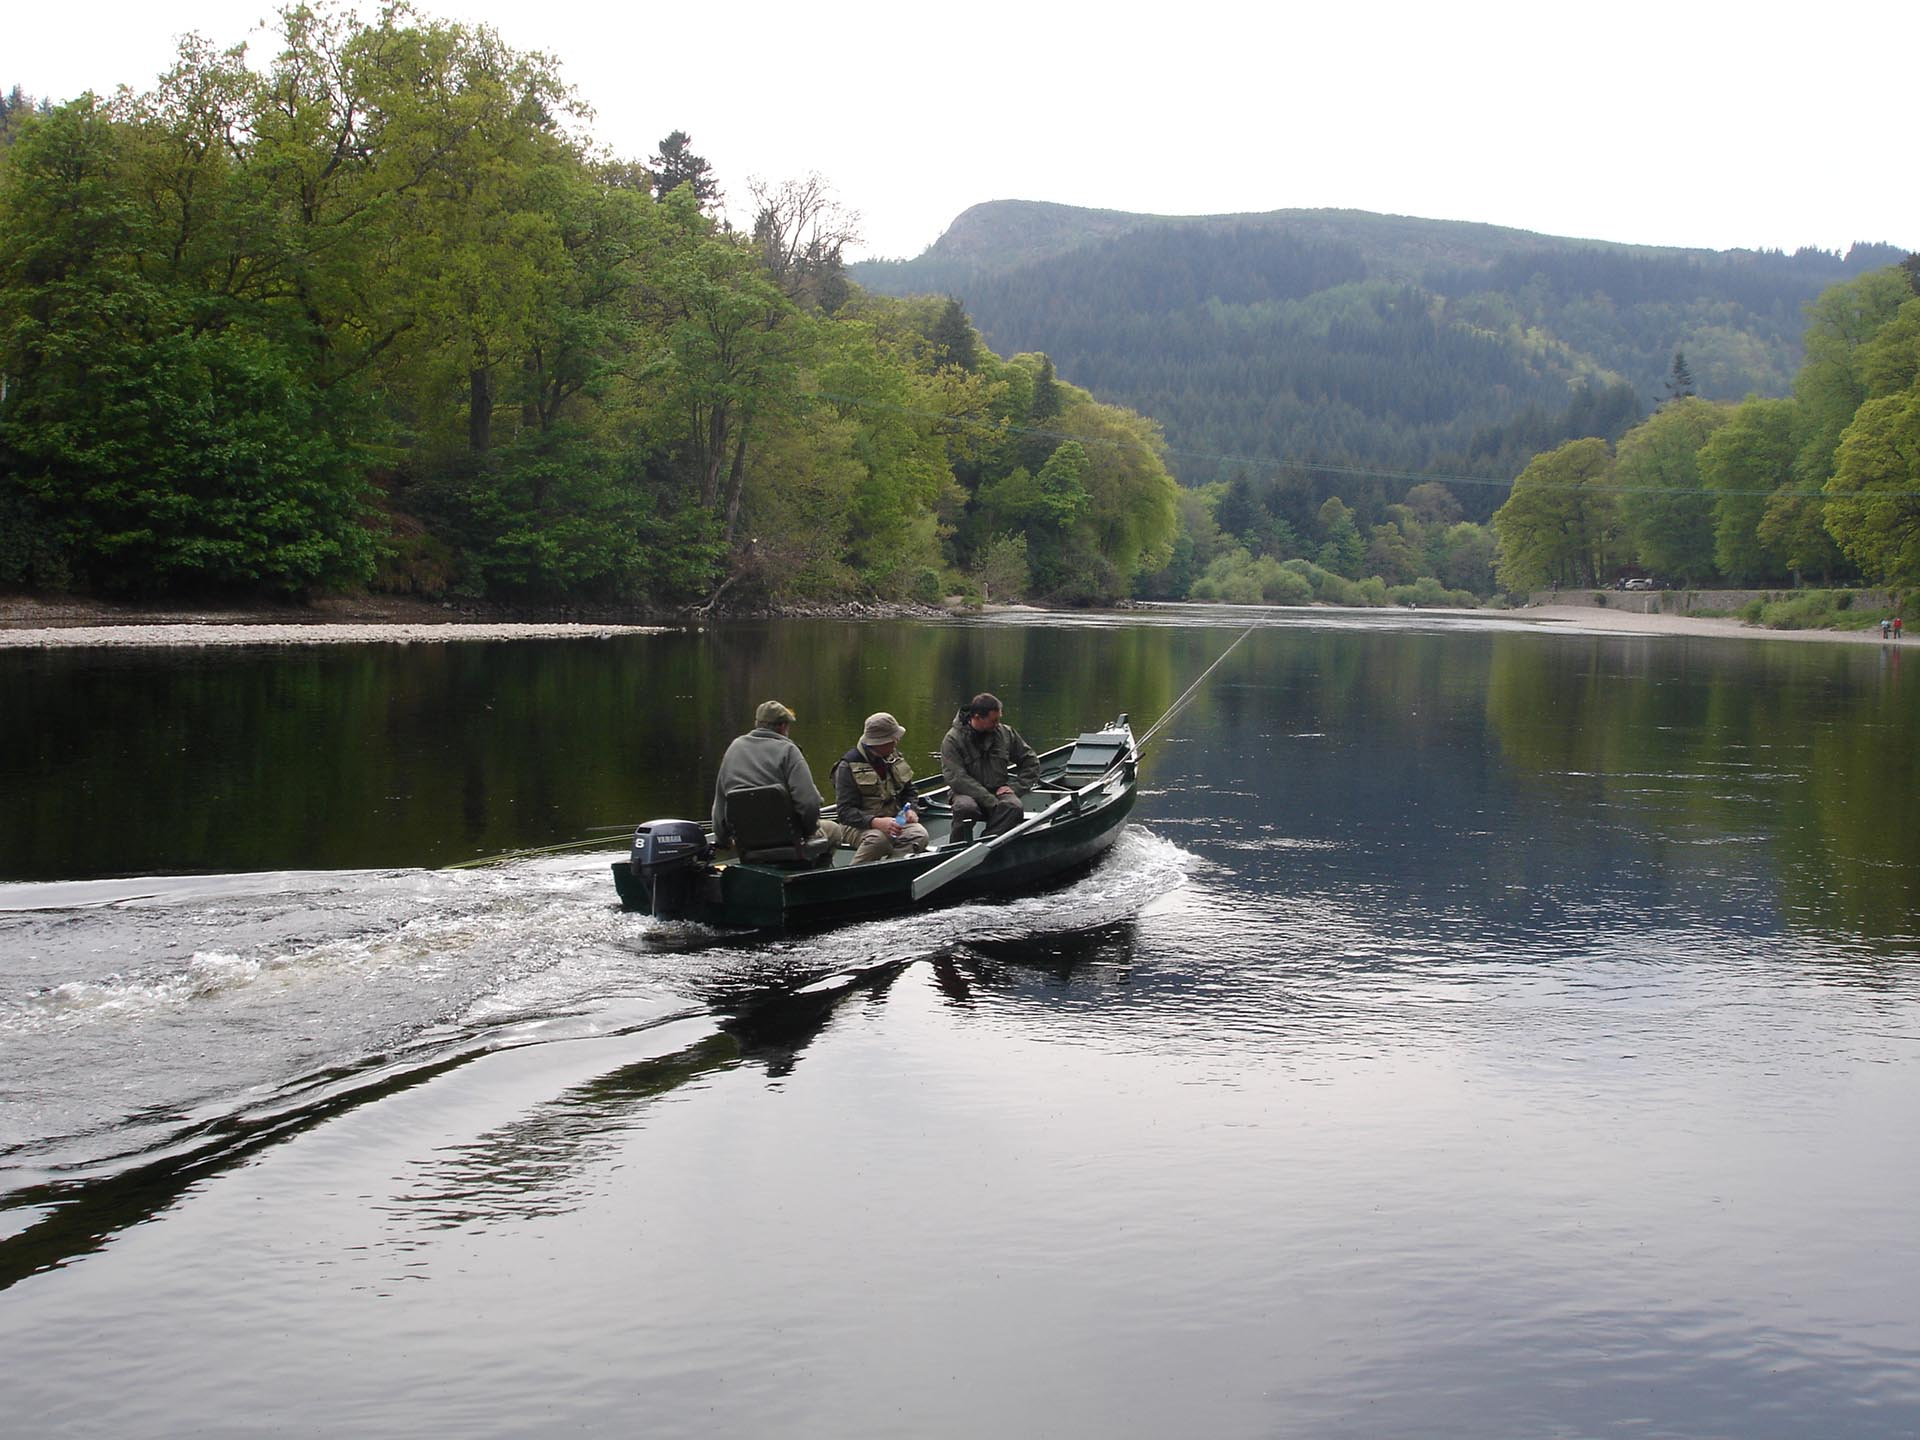 Fishing on the river at Dunkeld